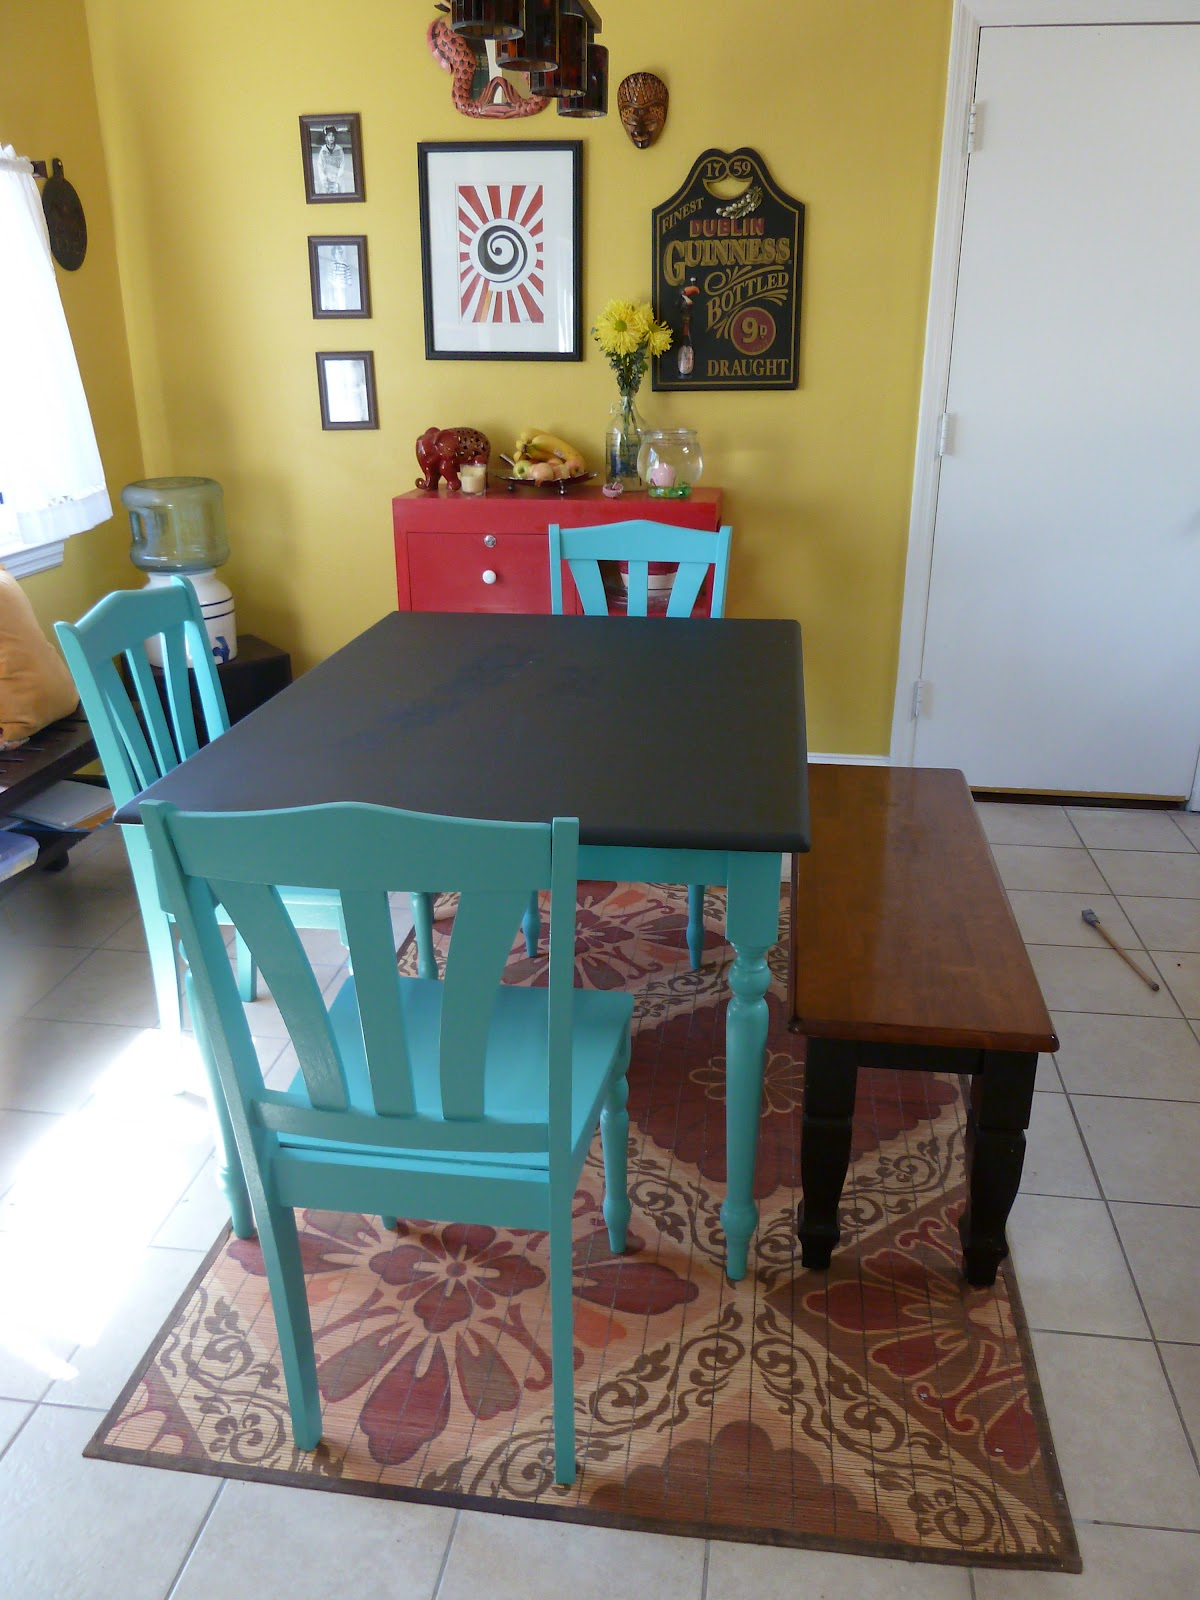 dal kitchen rehab and table art painting kitchen table First we sanded down the old veneer lightly with sandpaper a tedious process and then painted on several coats of a shiny happy turquoise